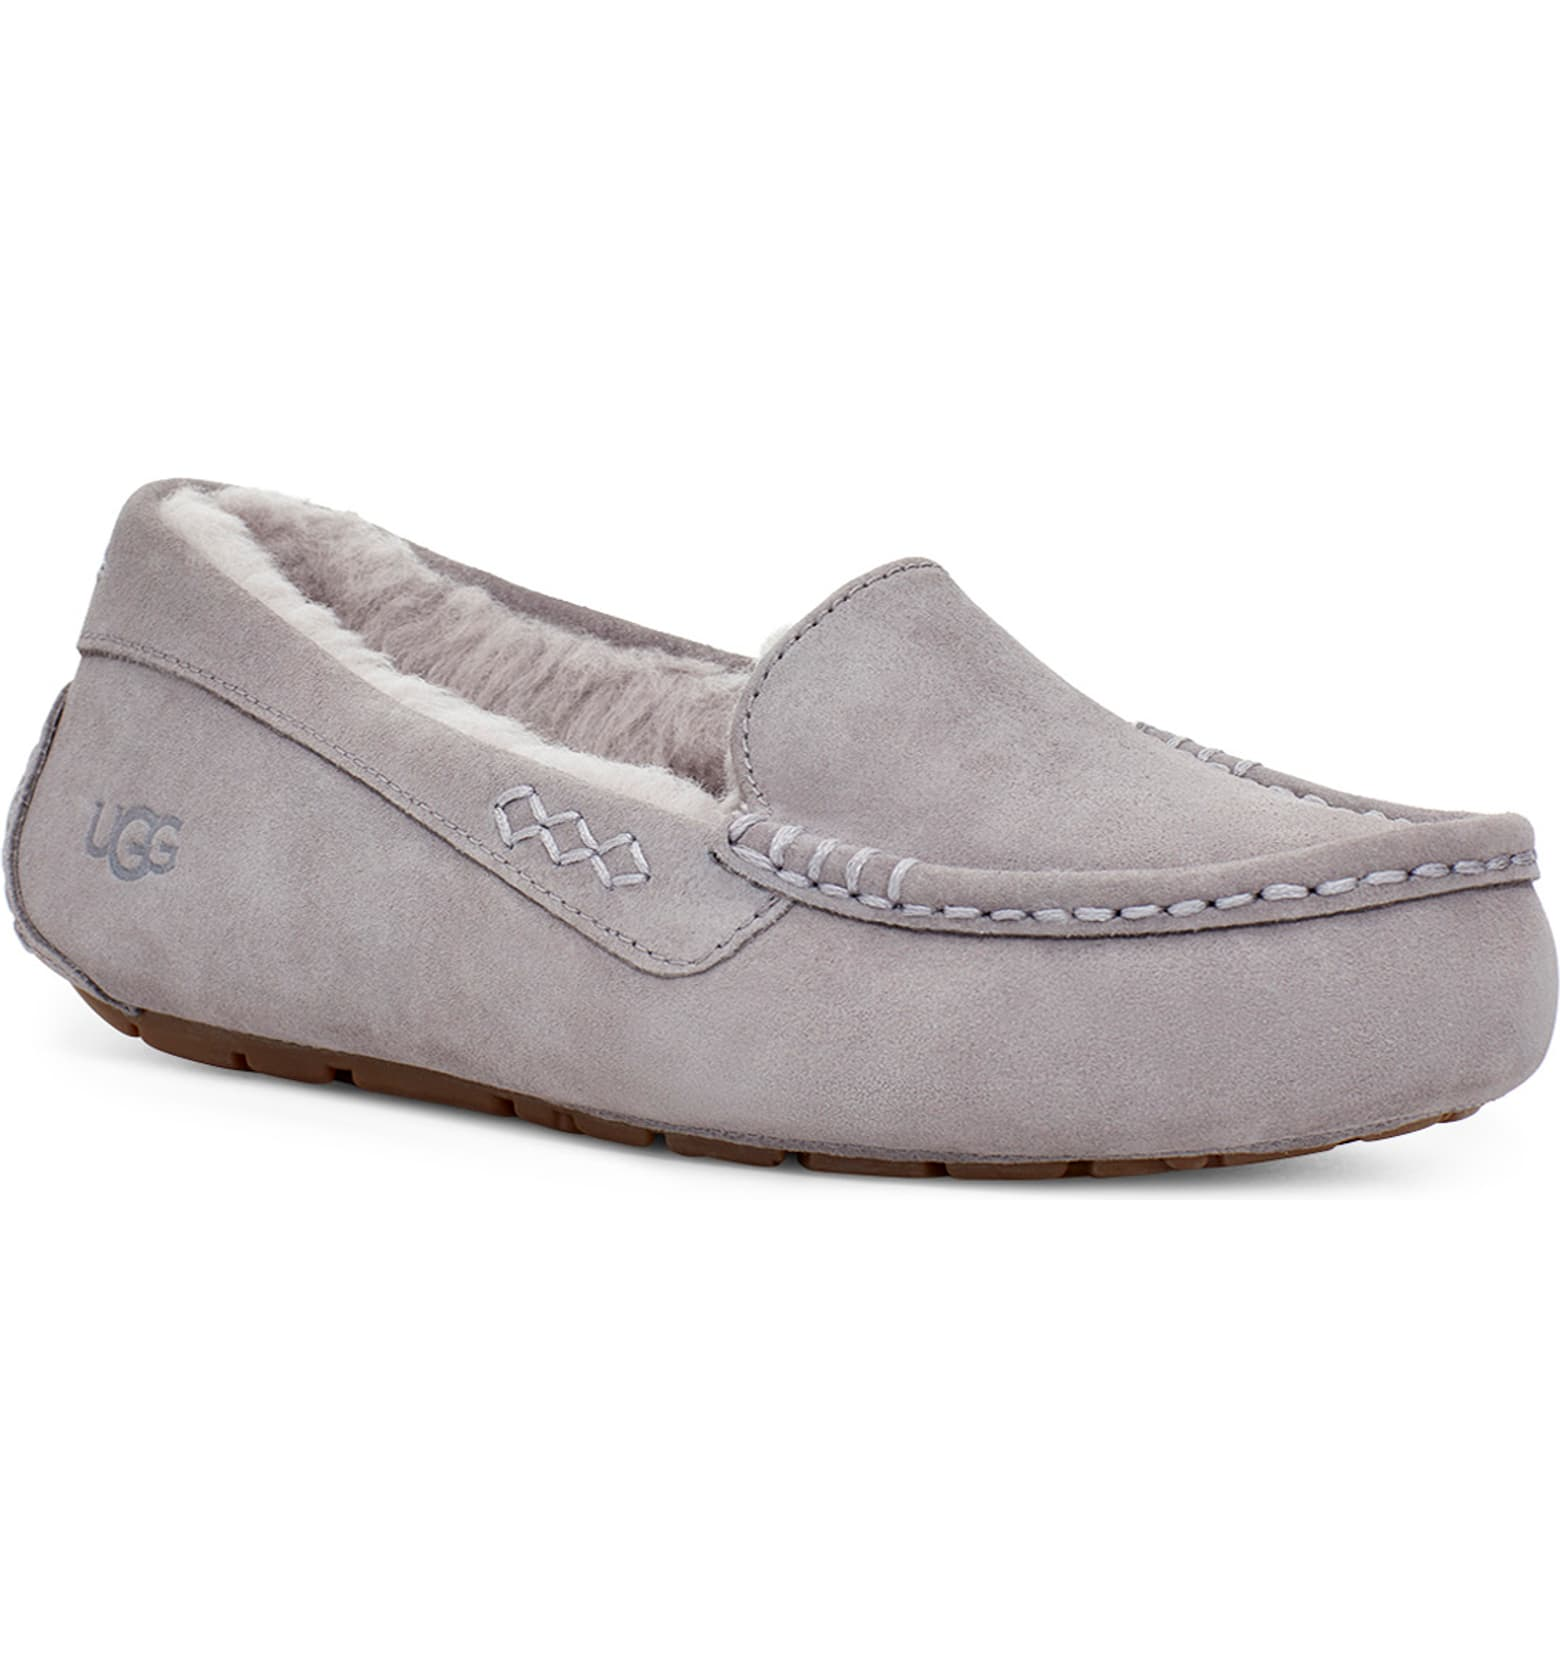 ugg Ansley Water Resistant Slipper, work from home clothes